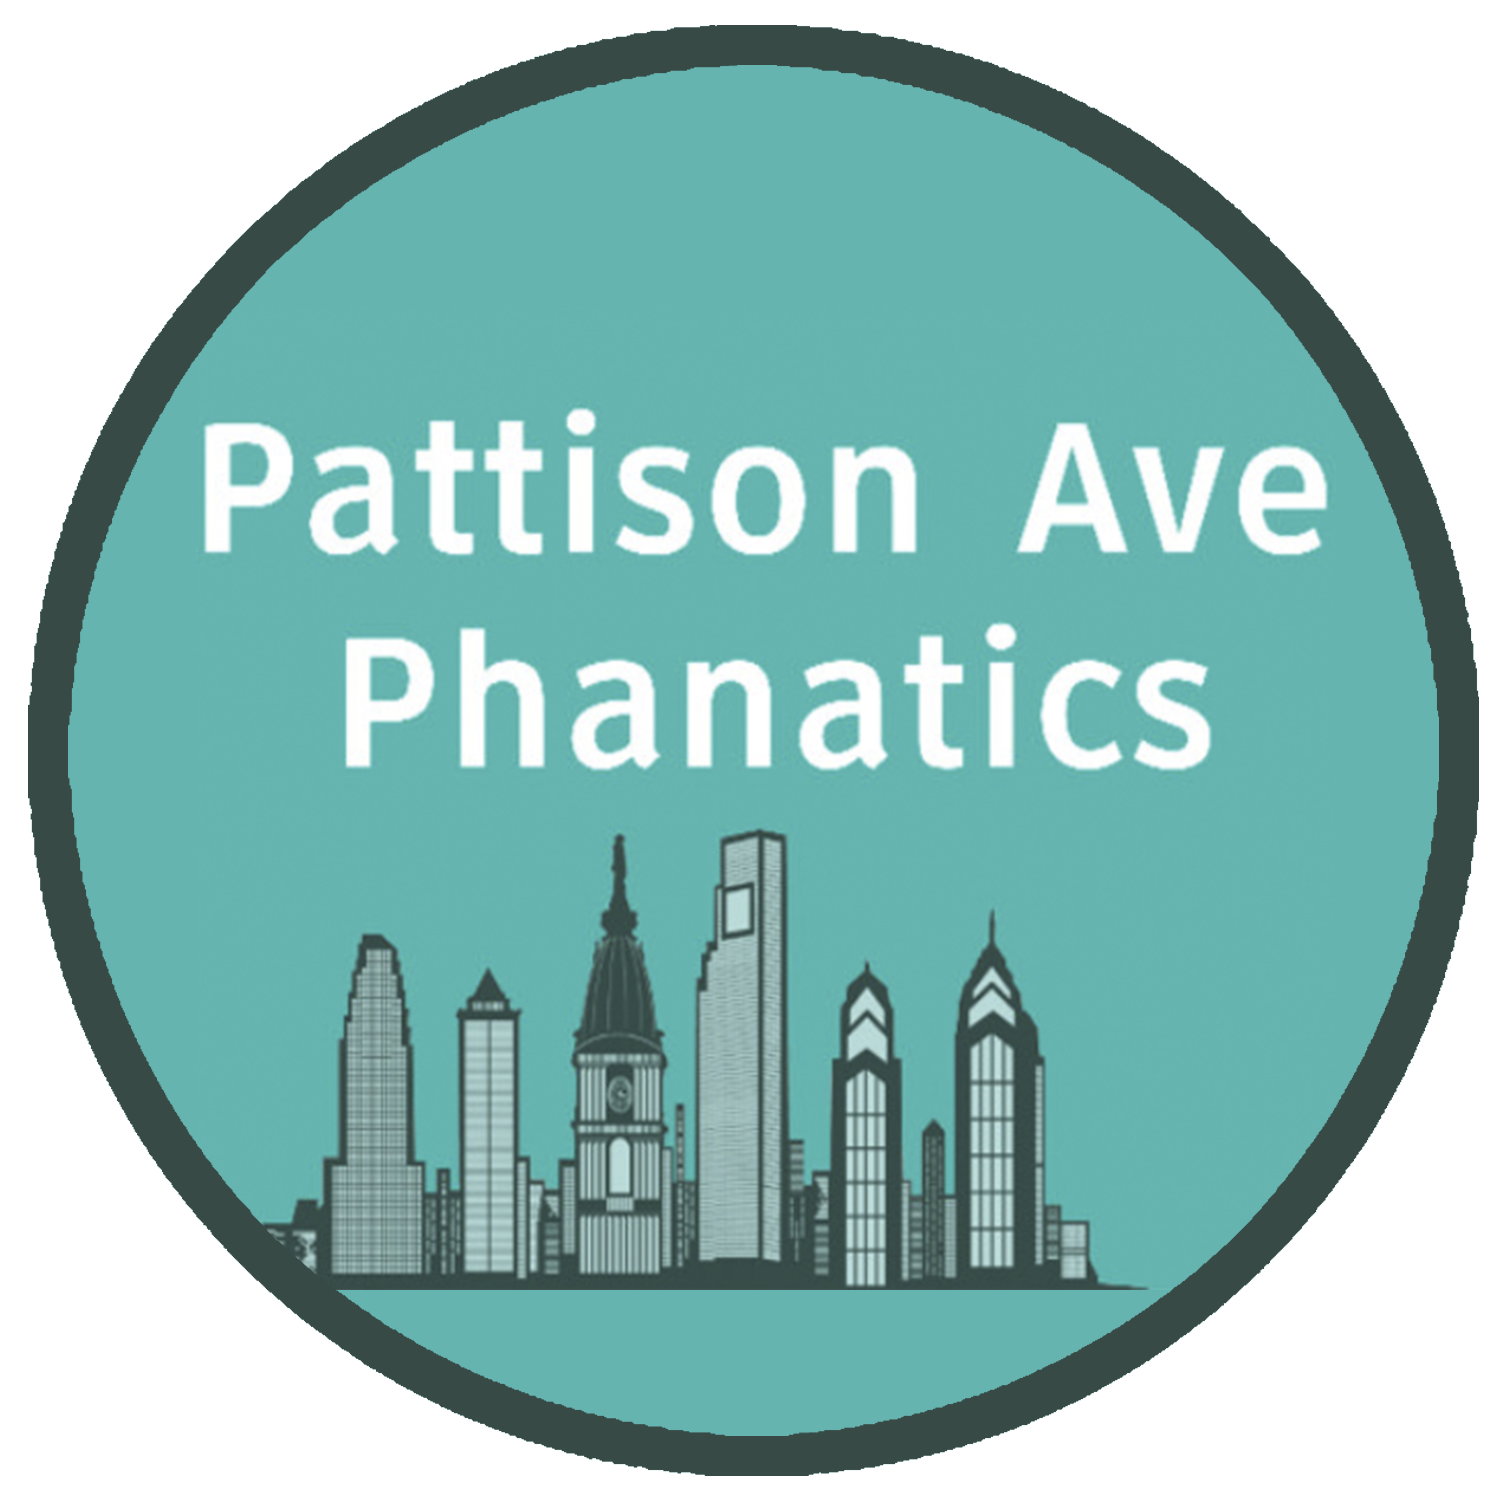 Pattison Ave.png